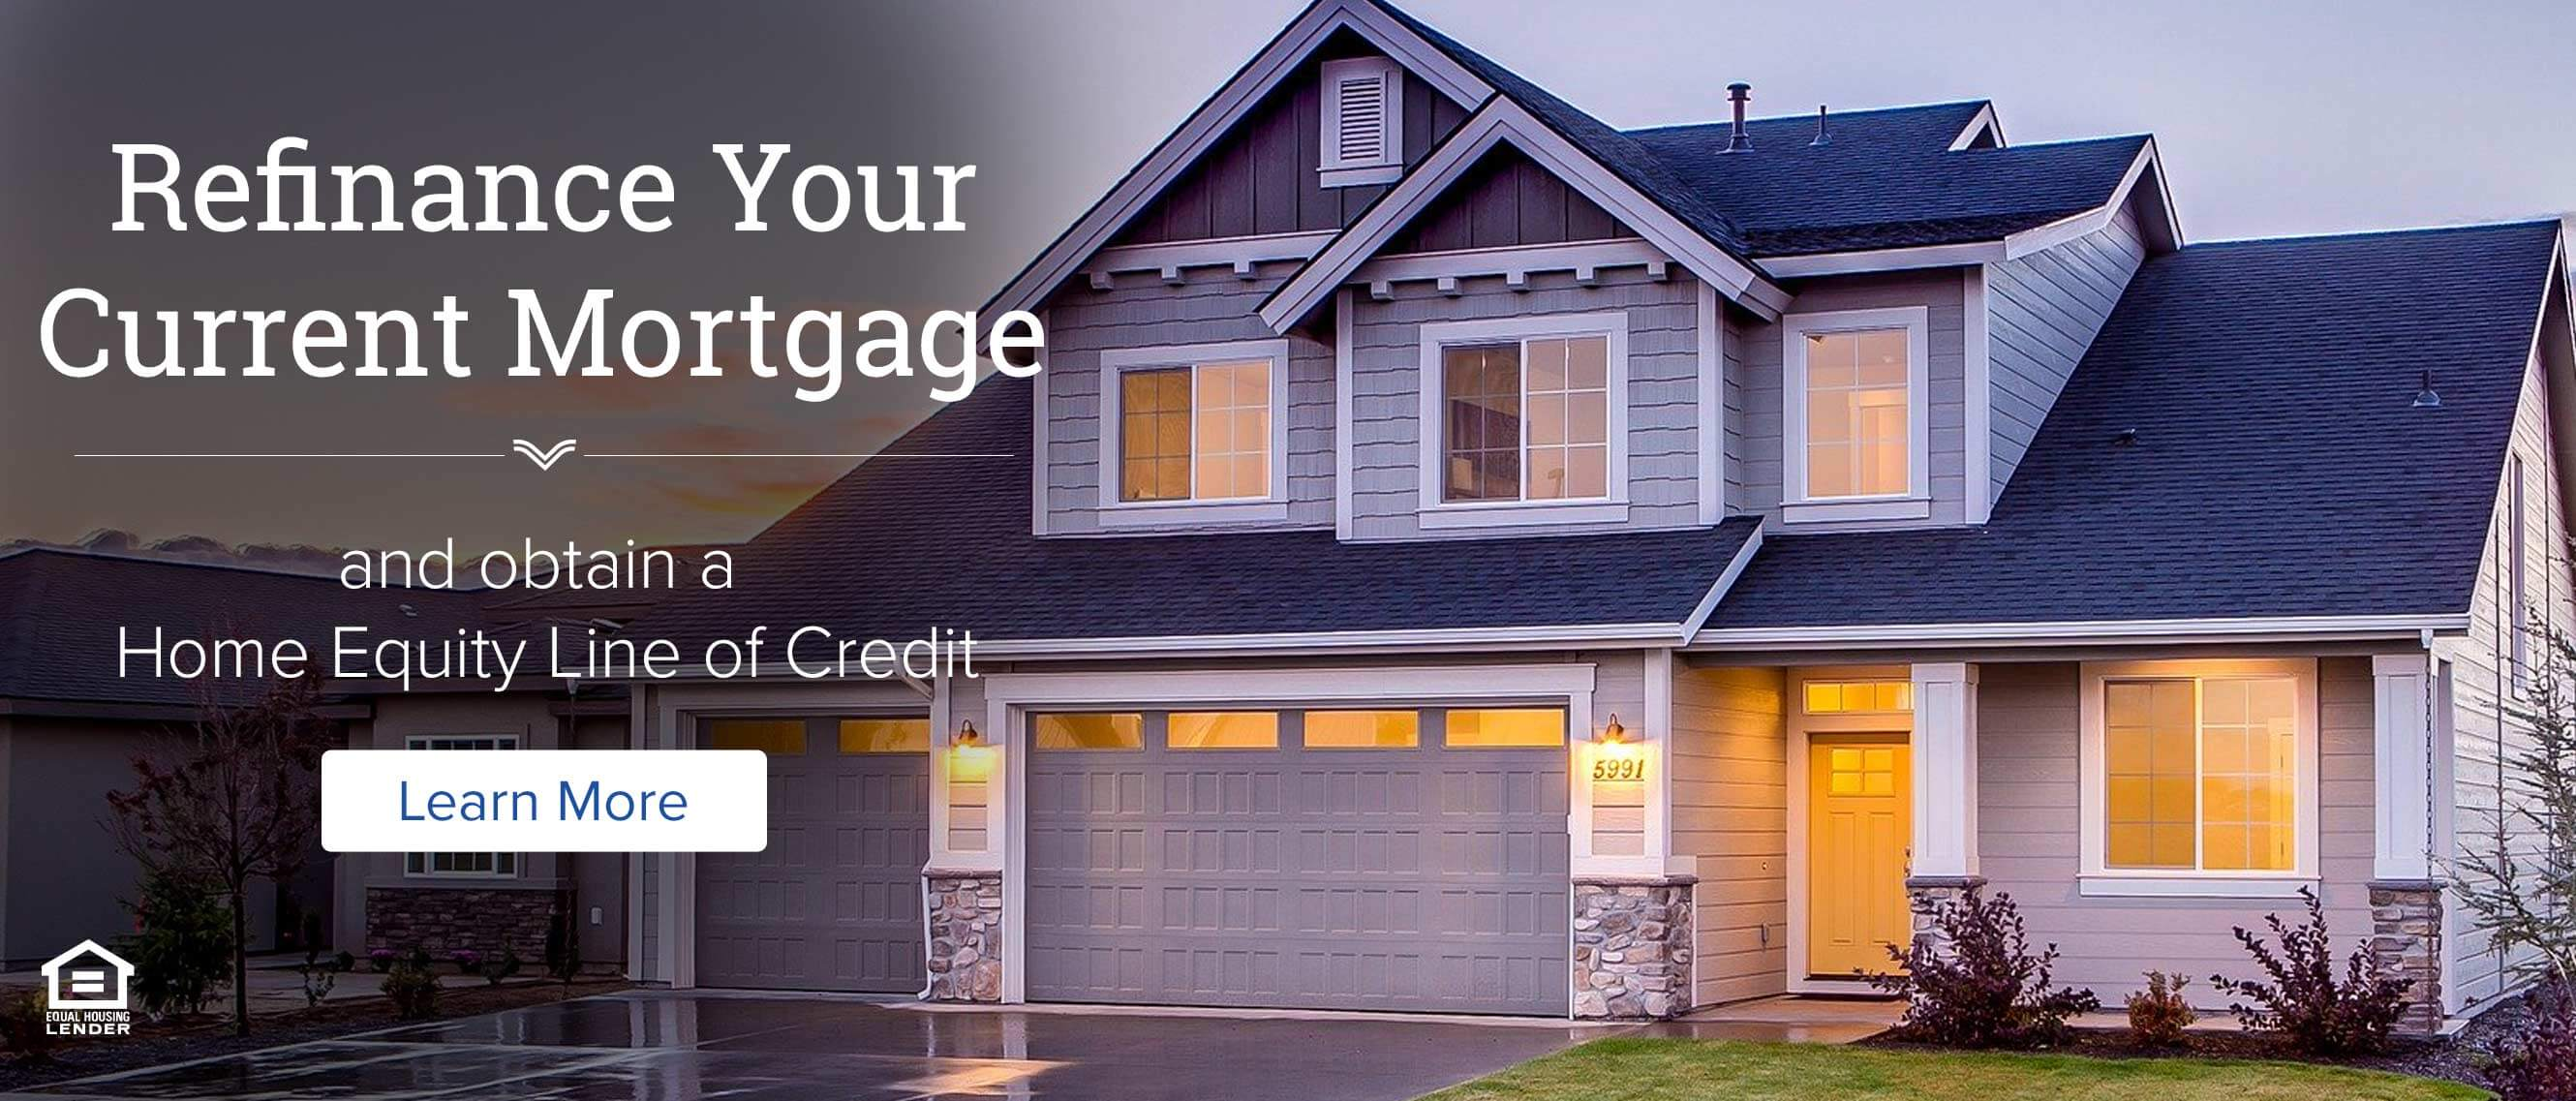 Refinance your current mortgage and obtain a Home Equity Line of Credit